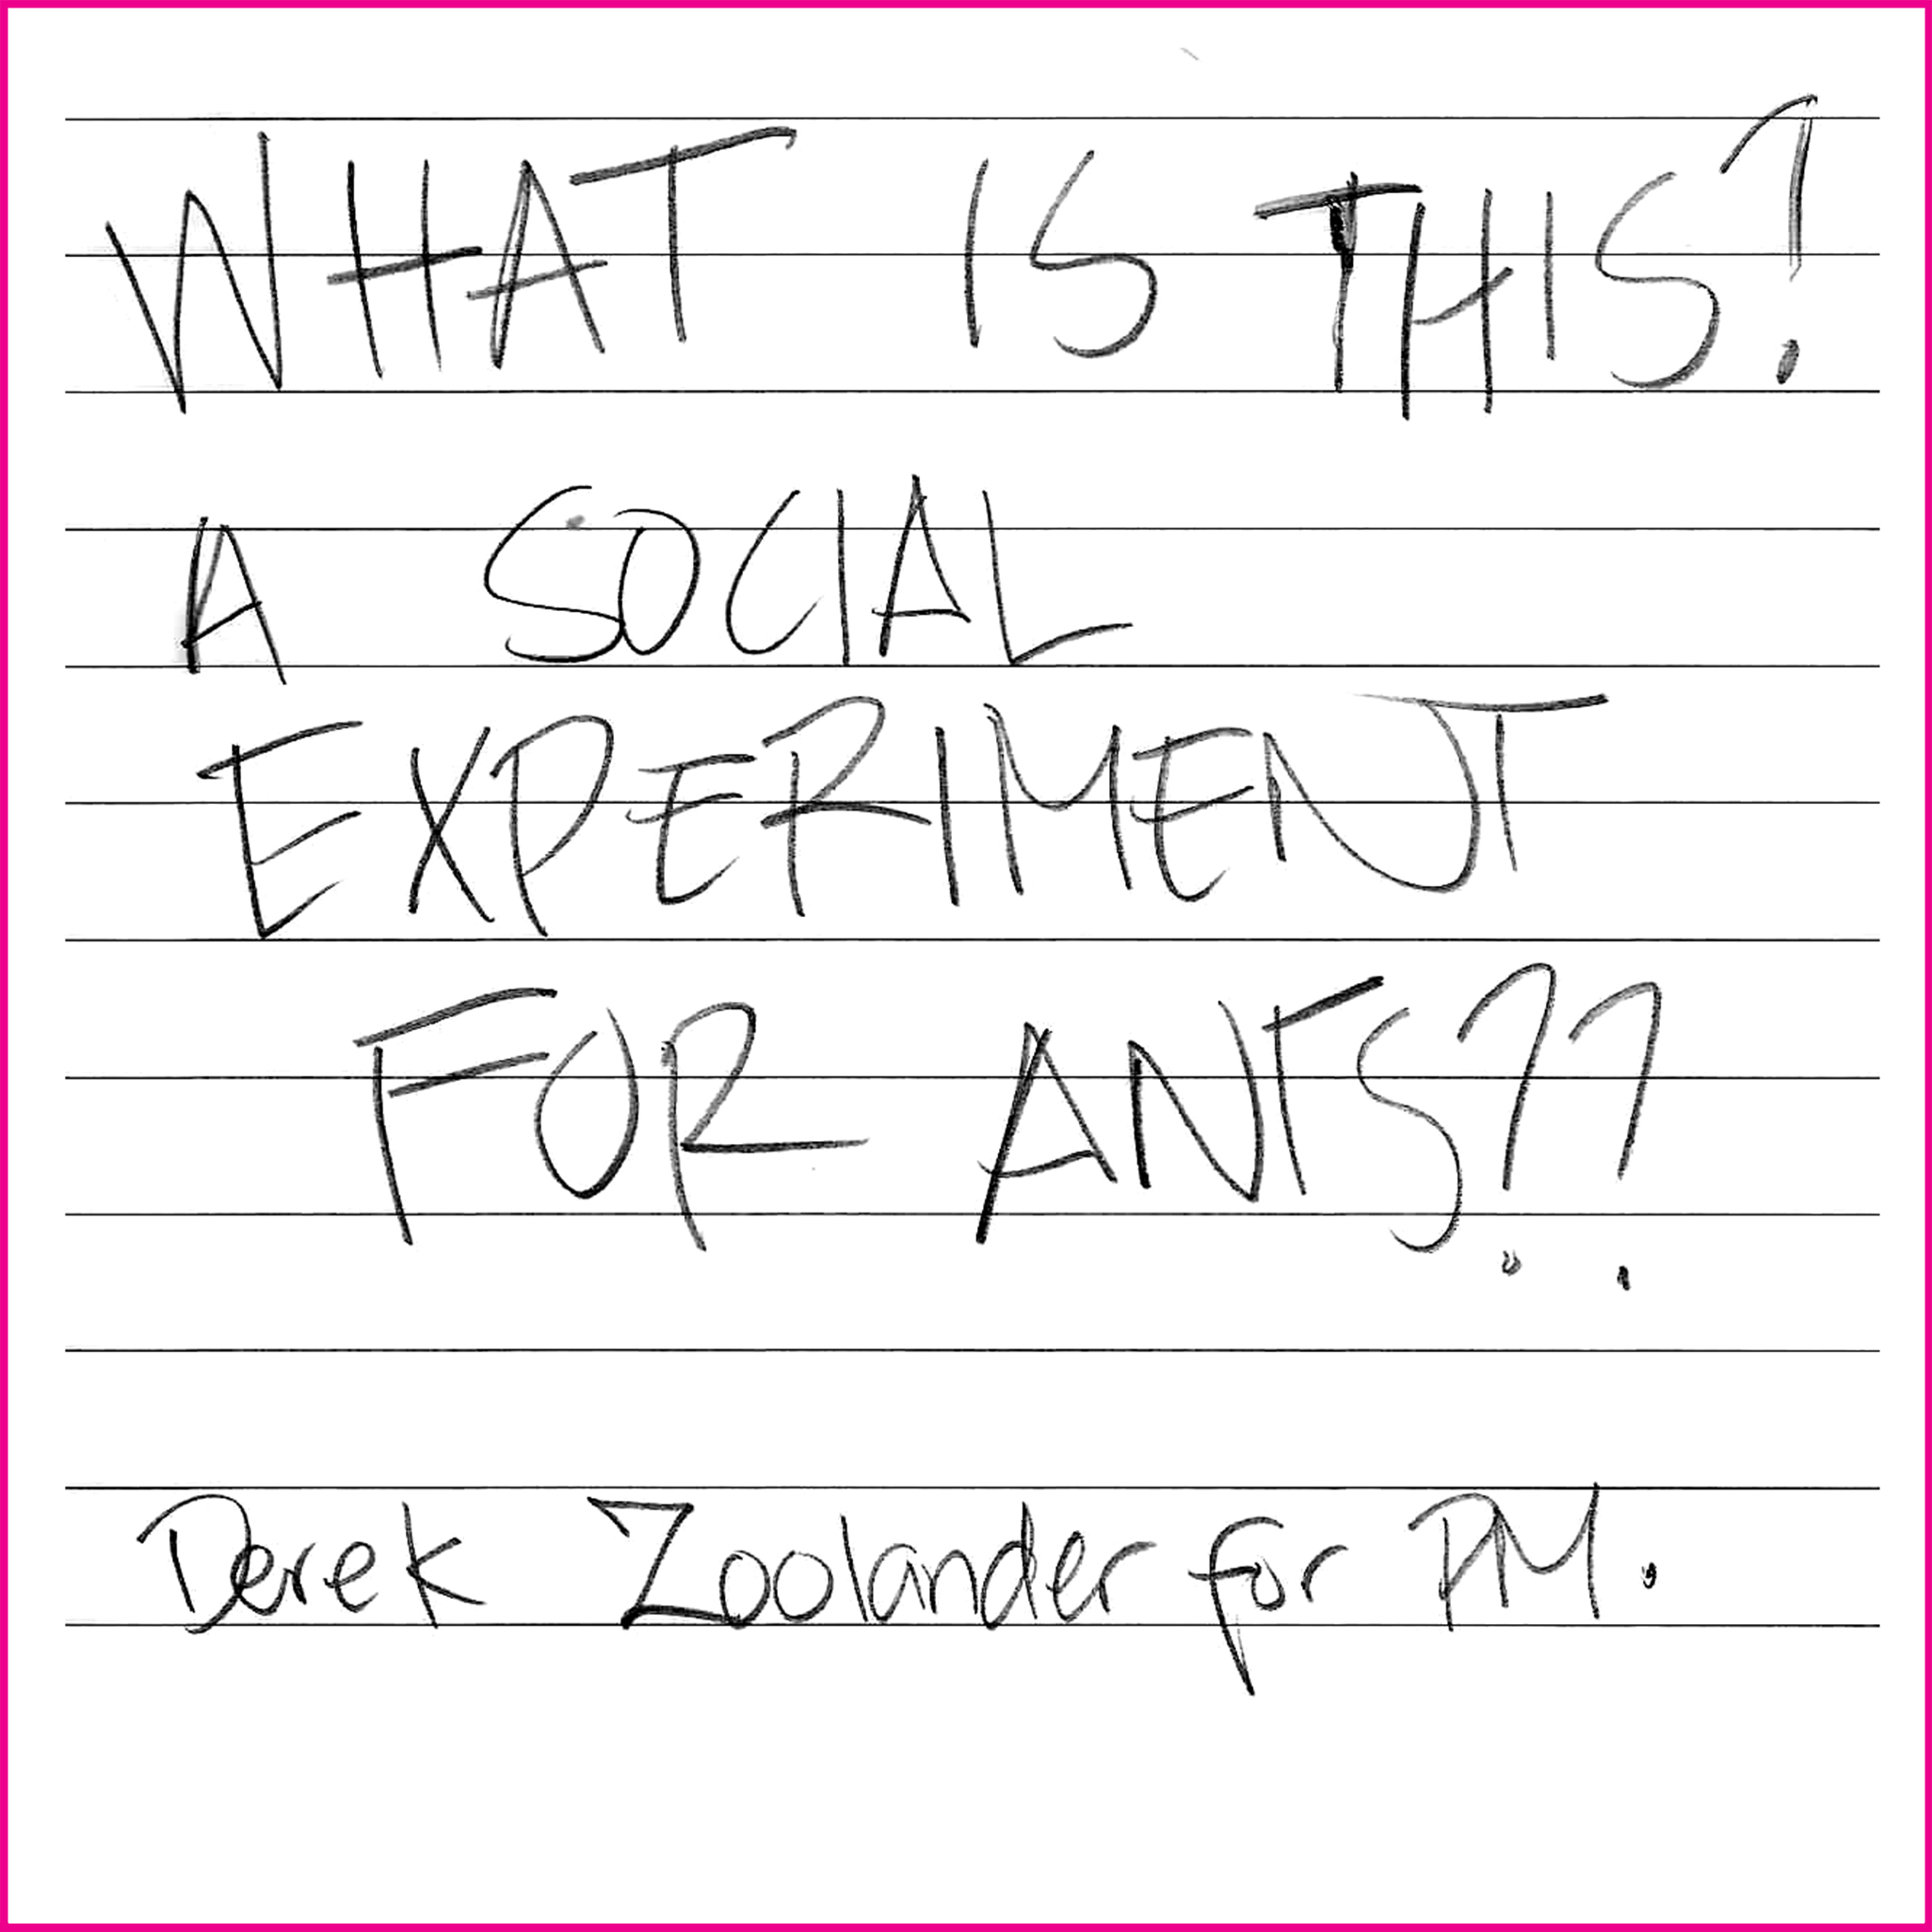 WHAT IS THIS? A SOCIAL EXPERIMENT FOR ANTS?  Derek Zoolander for PM.